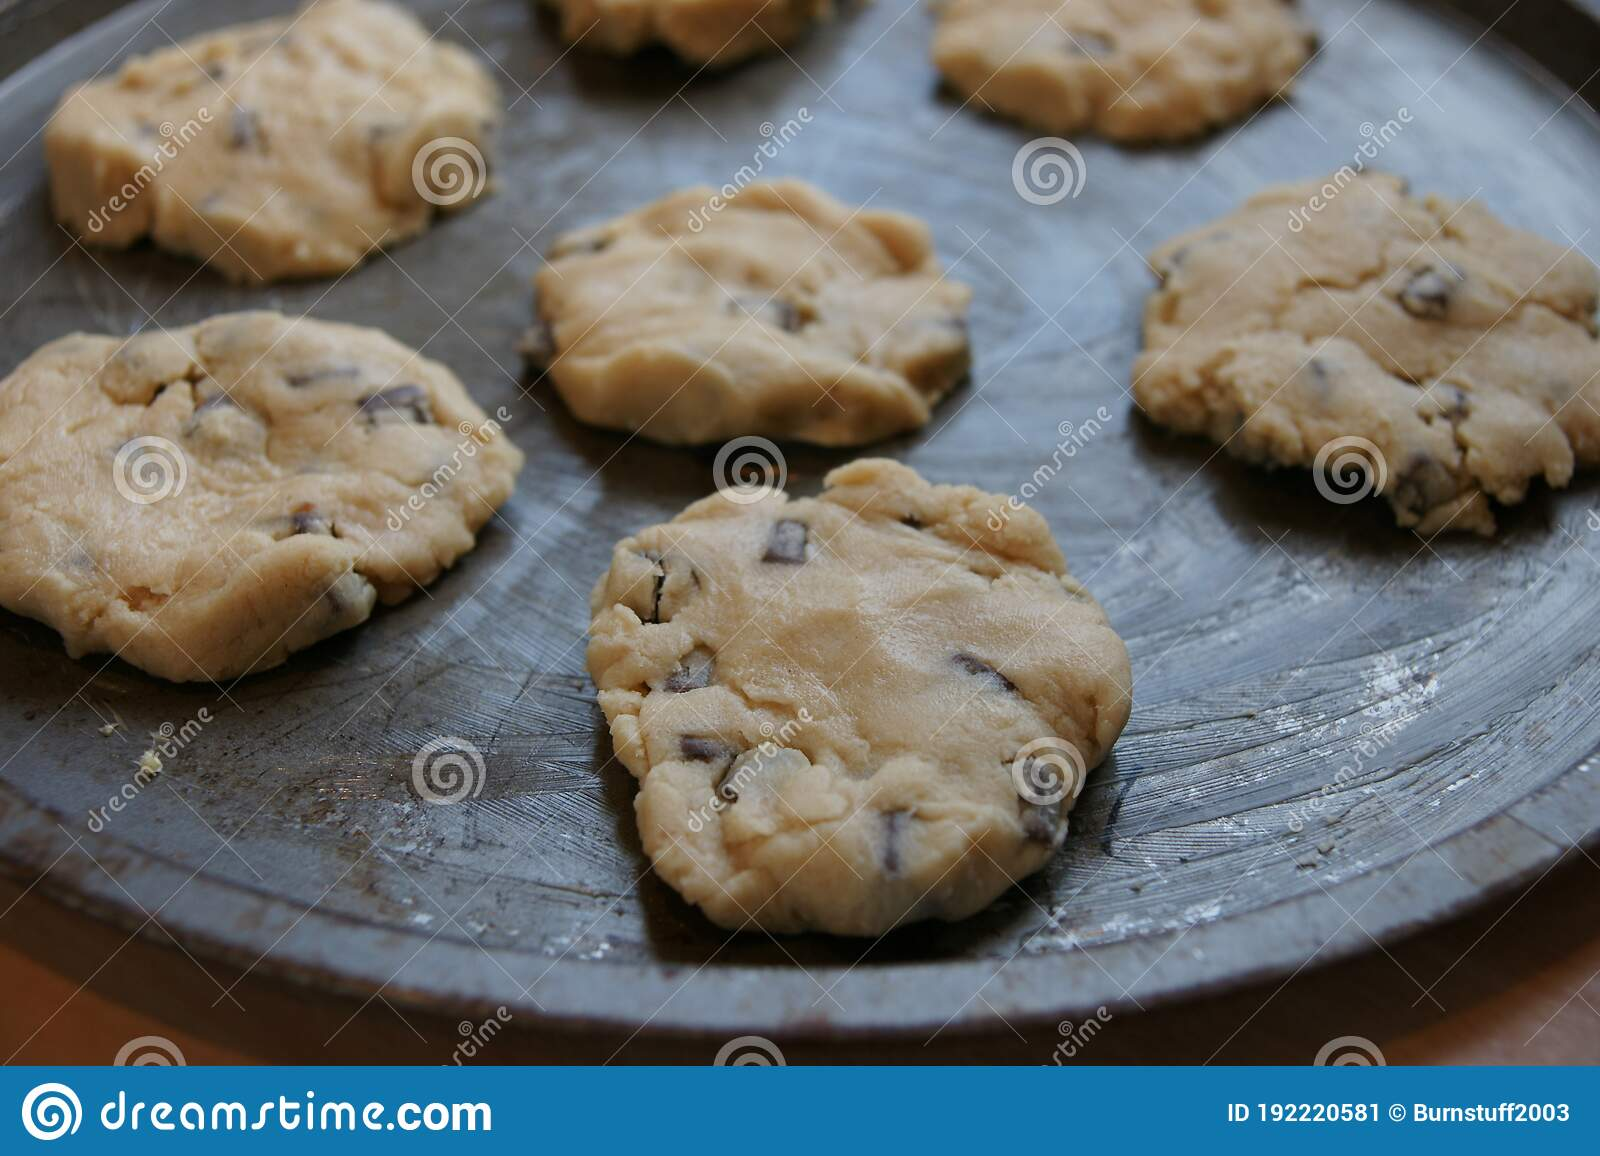 Homemade Biscuit Recipes With Self Rising Flour Mix Stock Image Image Of Buttery Cook 192220581